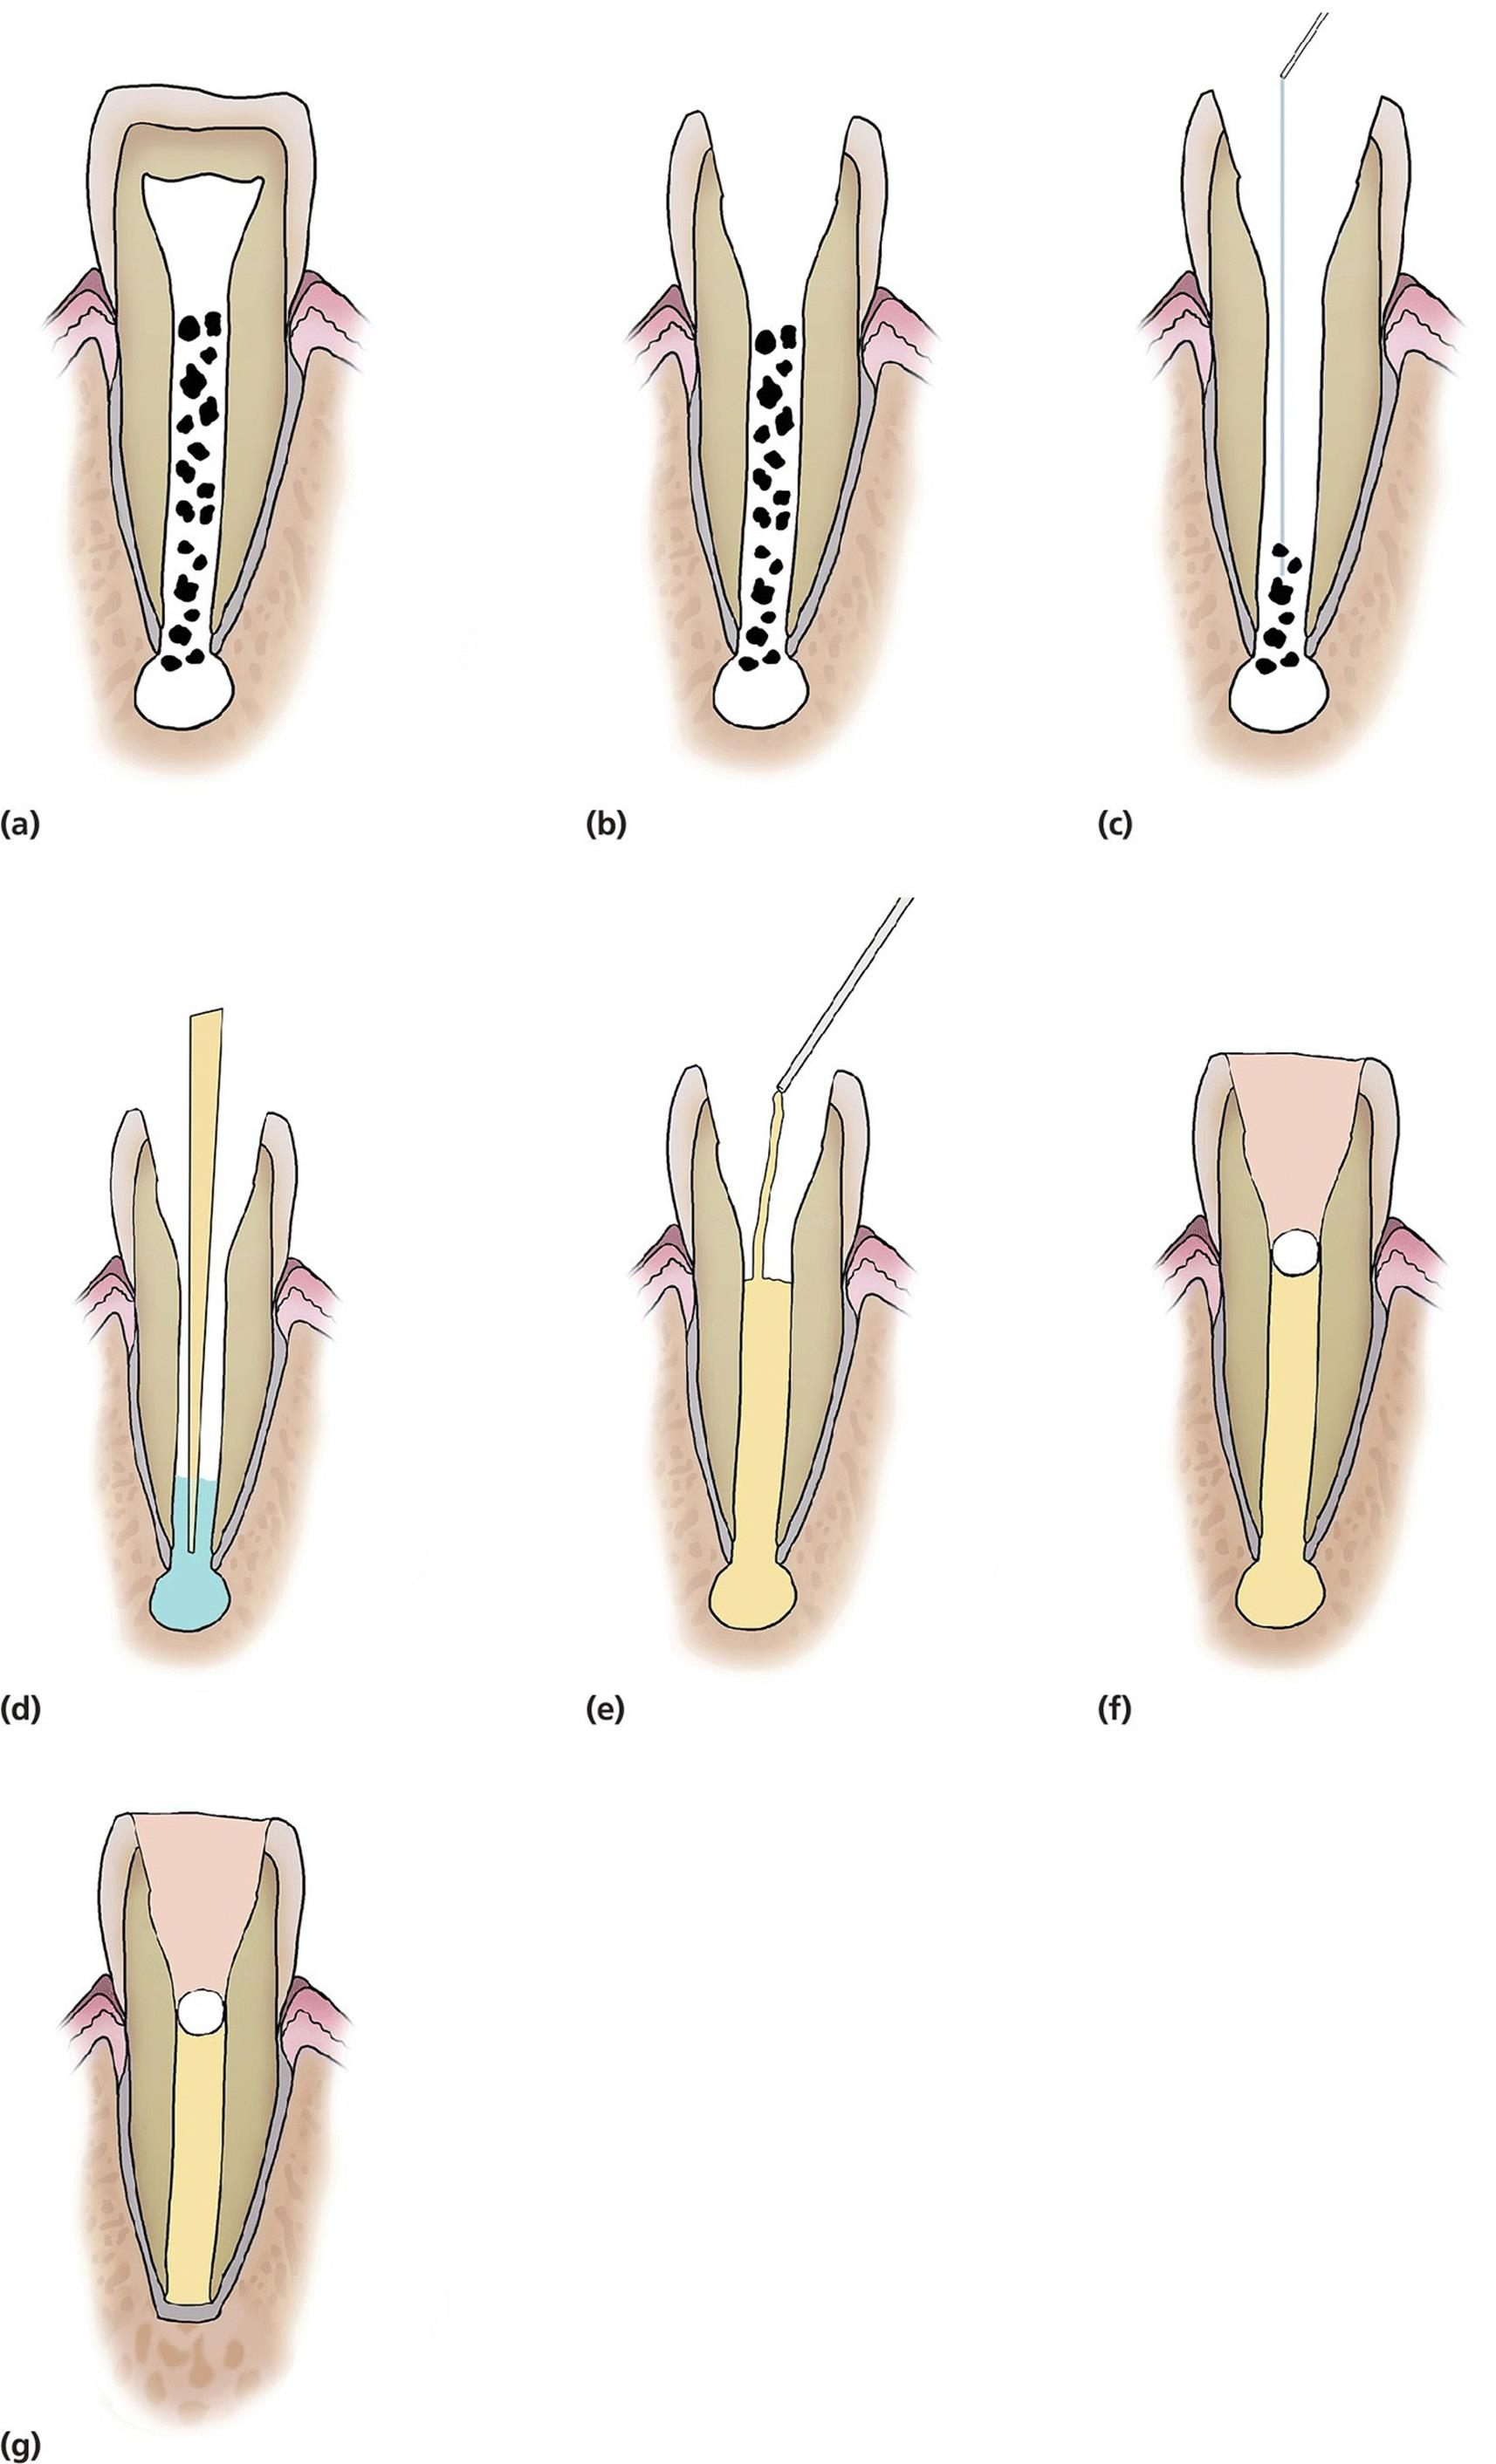 pulp therapy of immature permanent teeth